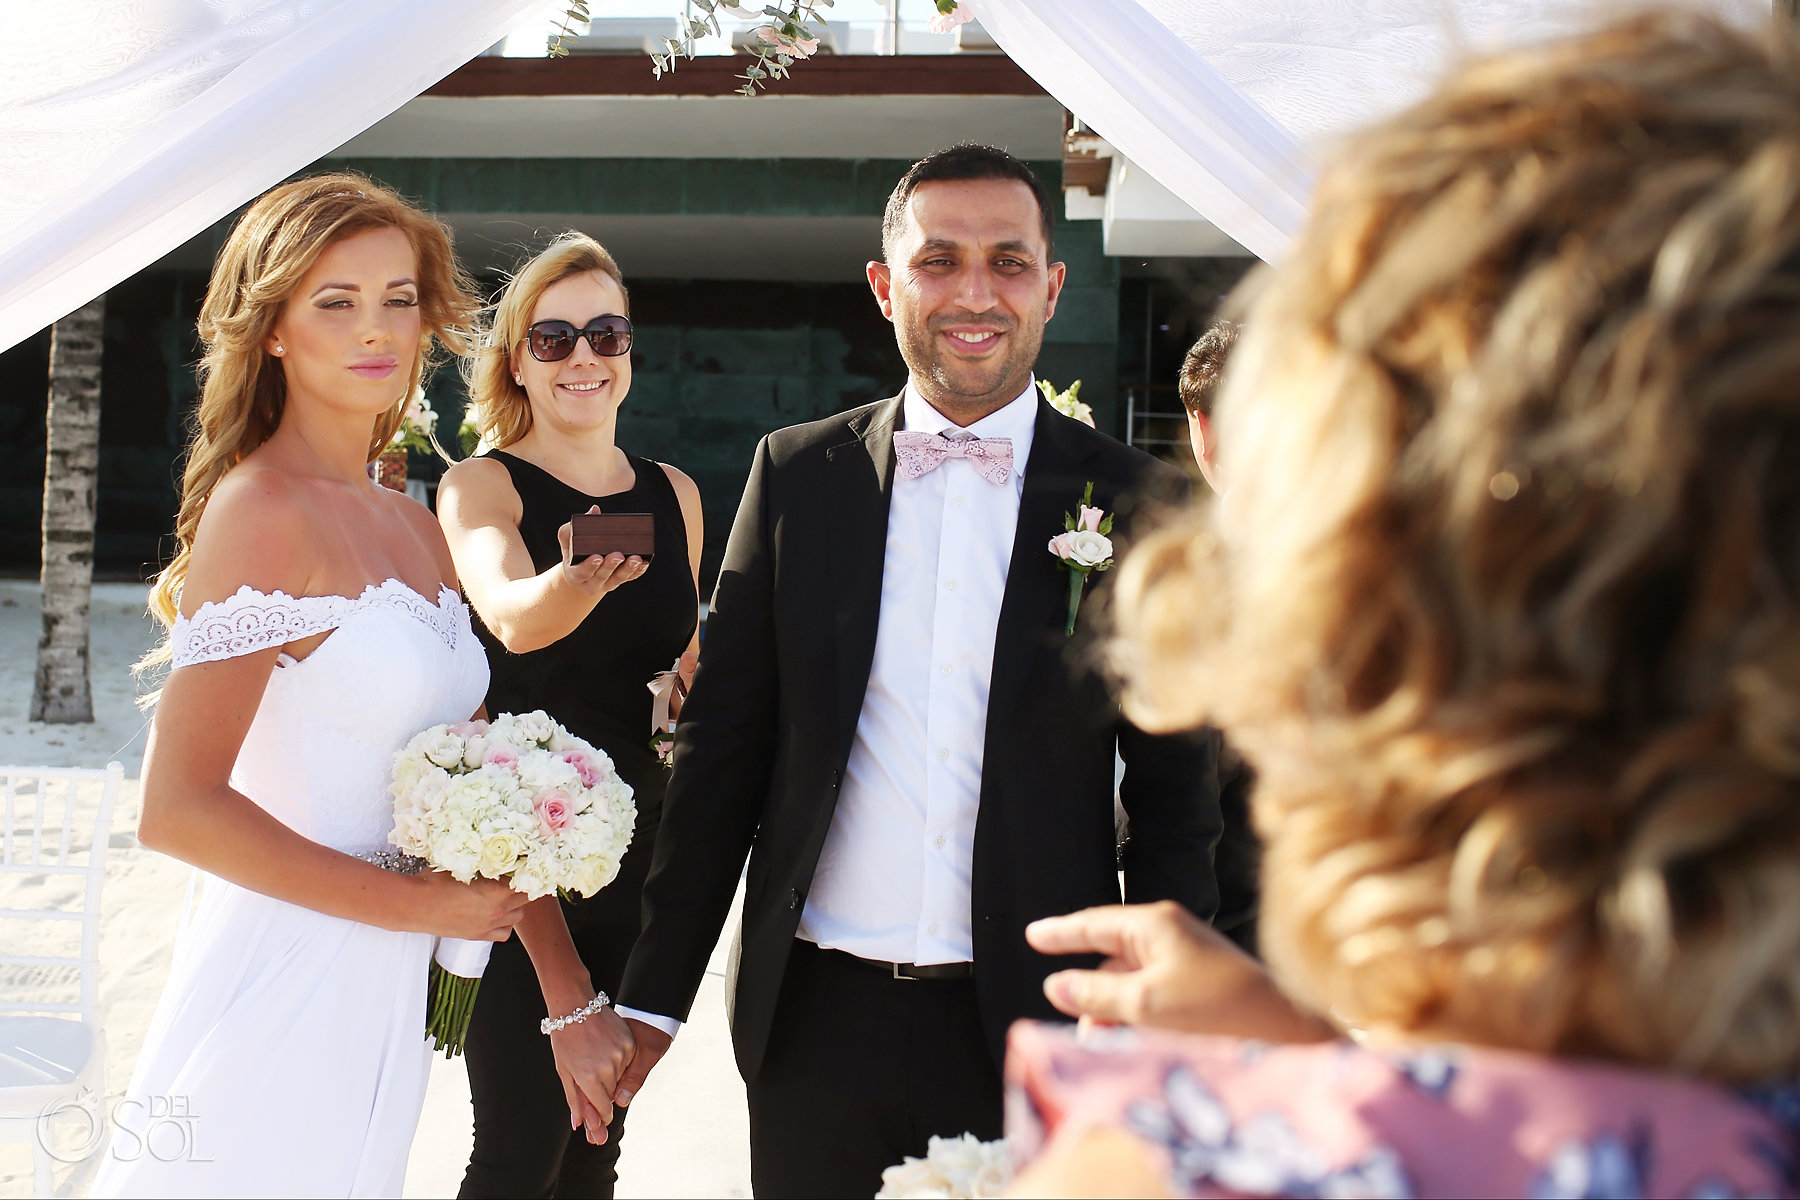 Wedding ring carrier elopement ceremony Best Locations Mexico